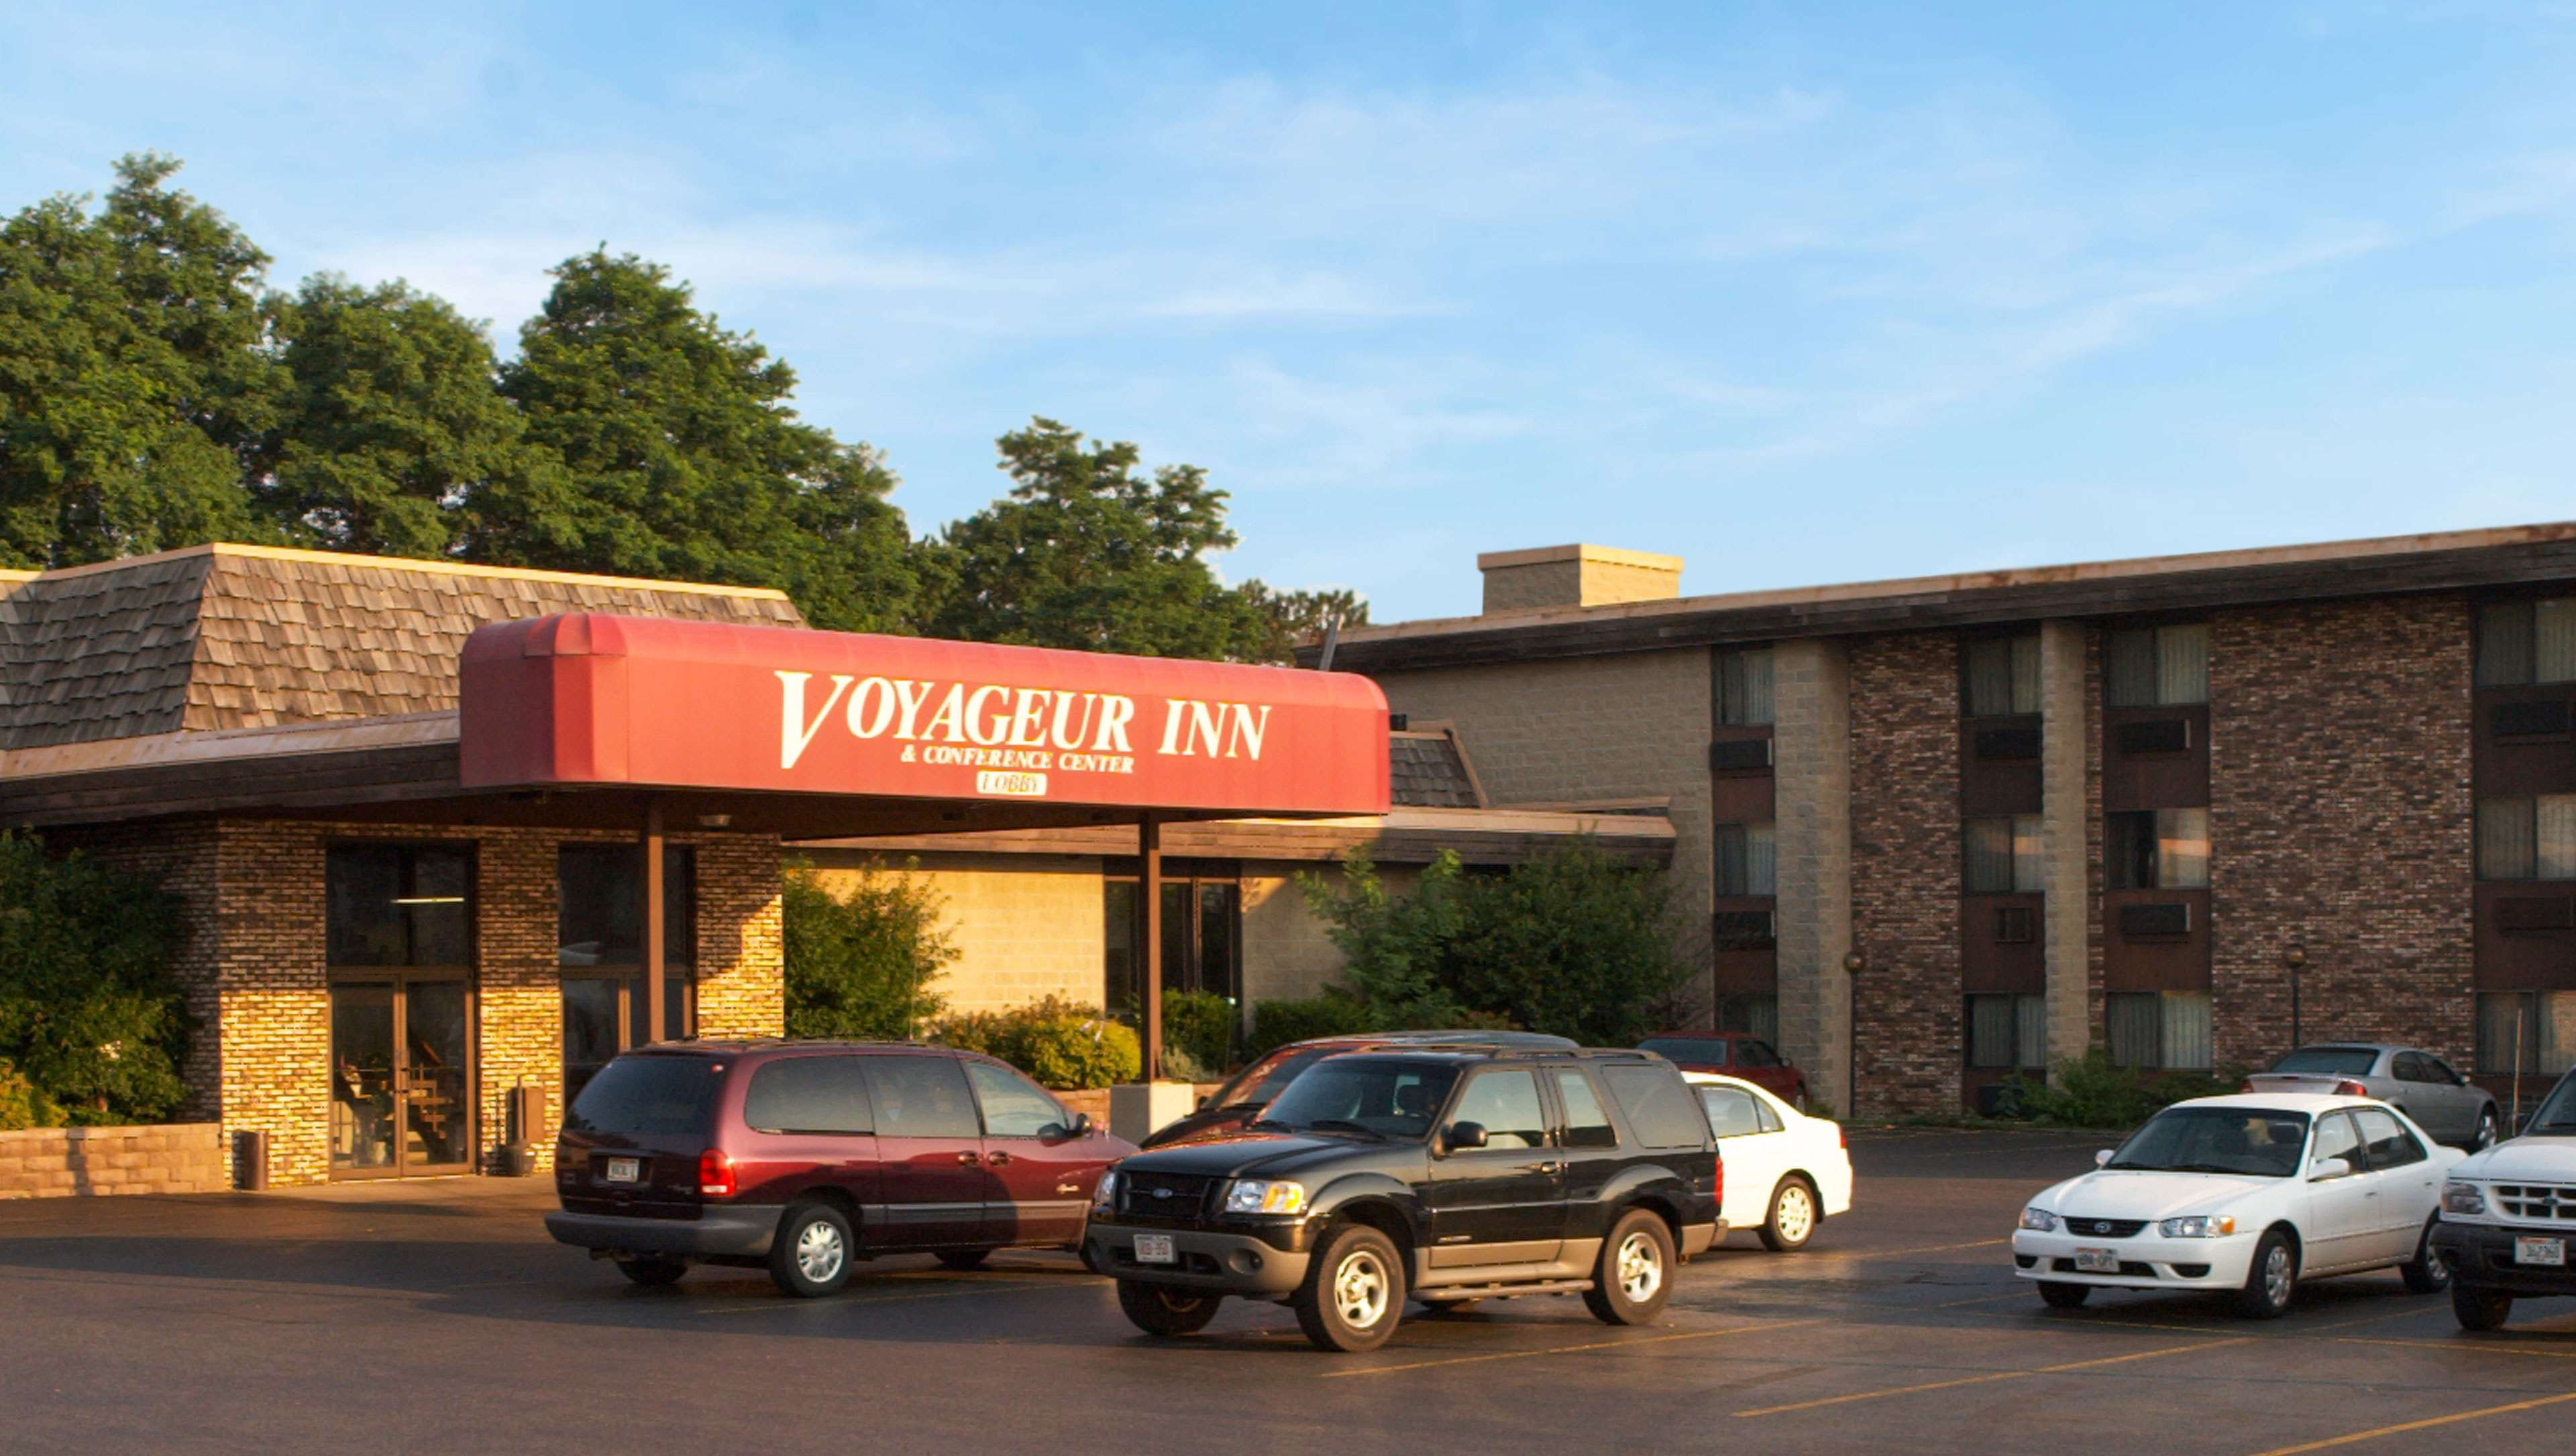 Voyageur Inn & Conference Center